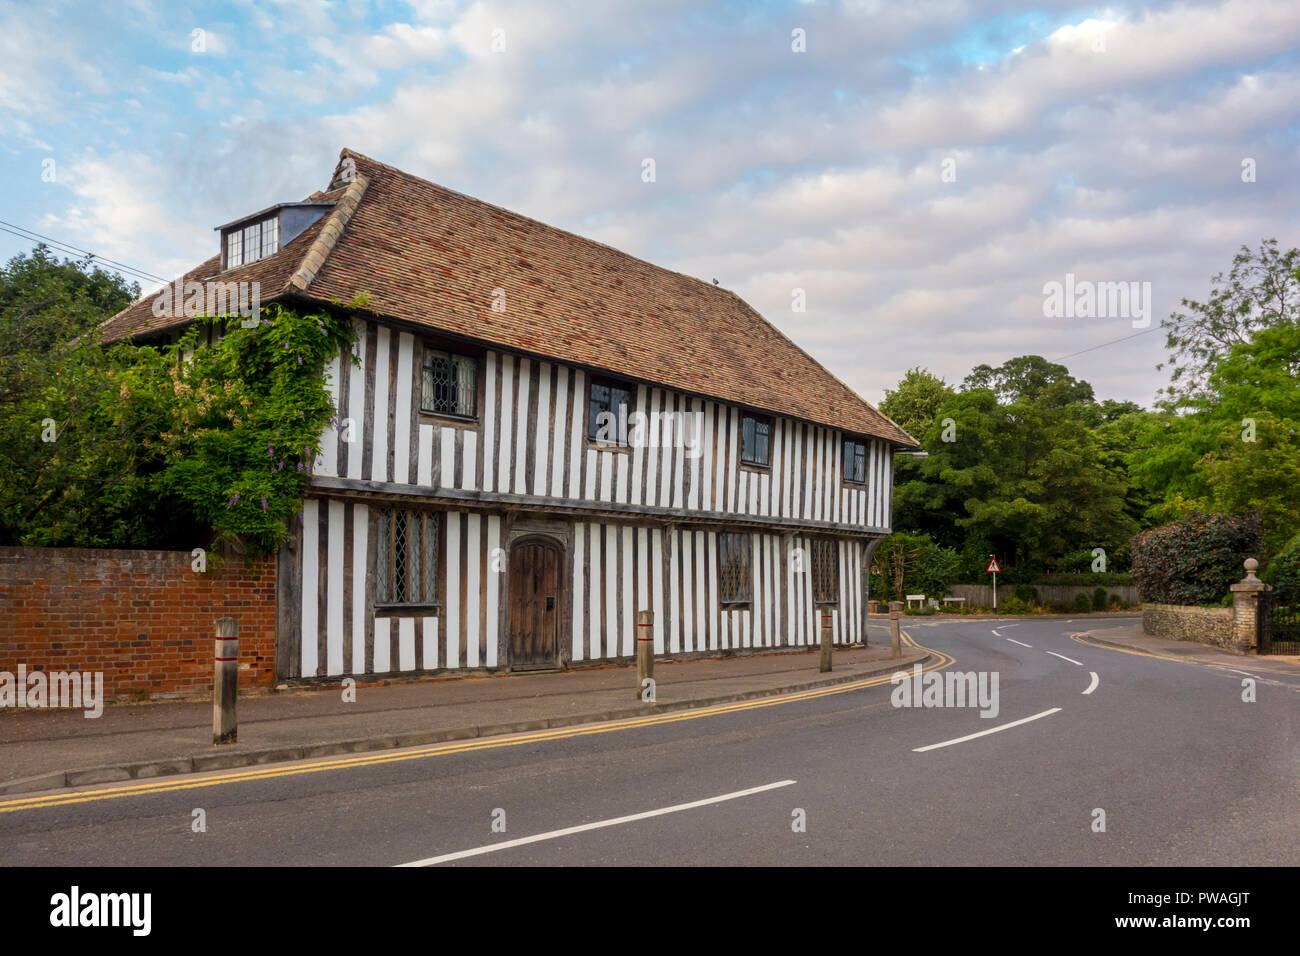 The Guildhall, historic 16th century timber framed building in Whittlesford, Cambridge, South Cambridgeshire, UK - Stock Image